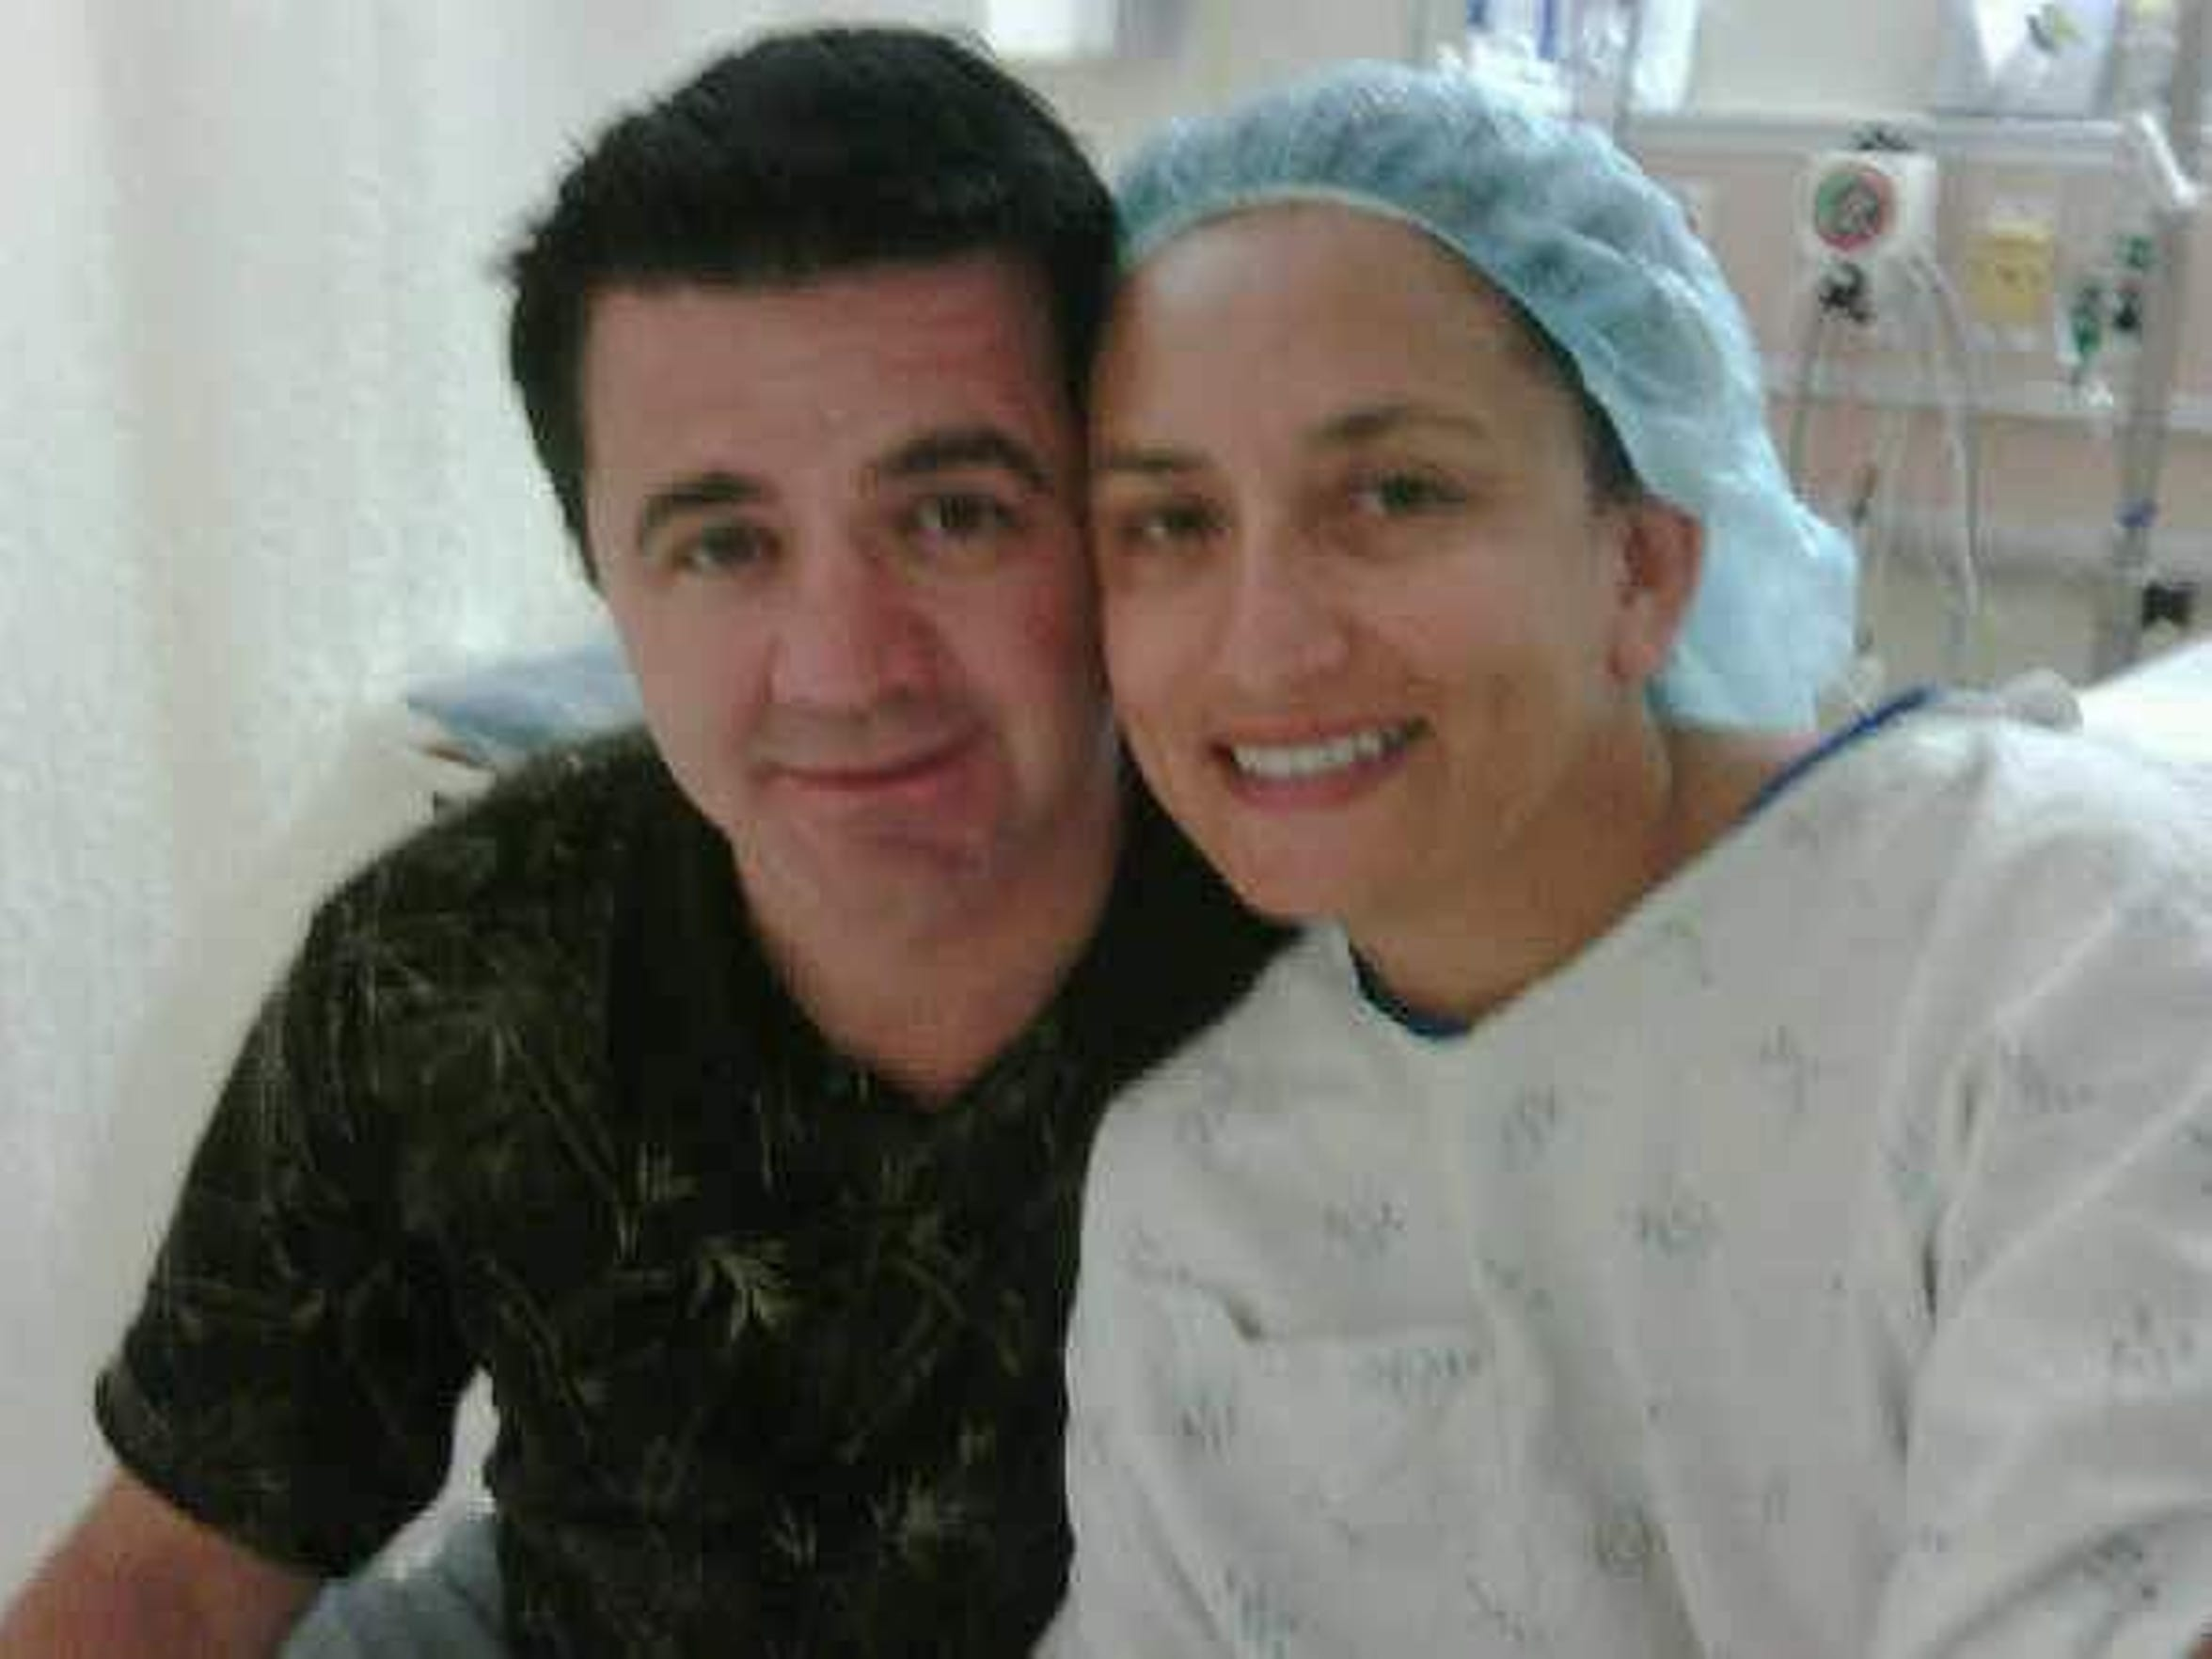 Claudia Ortega-Lukas and her husband Tim Lukas pose for a photo while in the hospital.